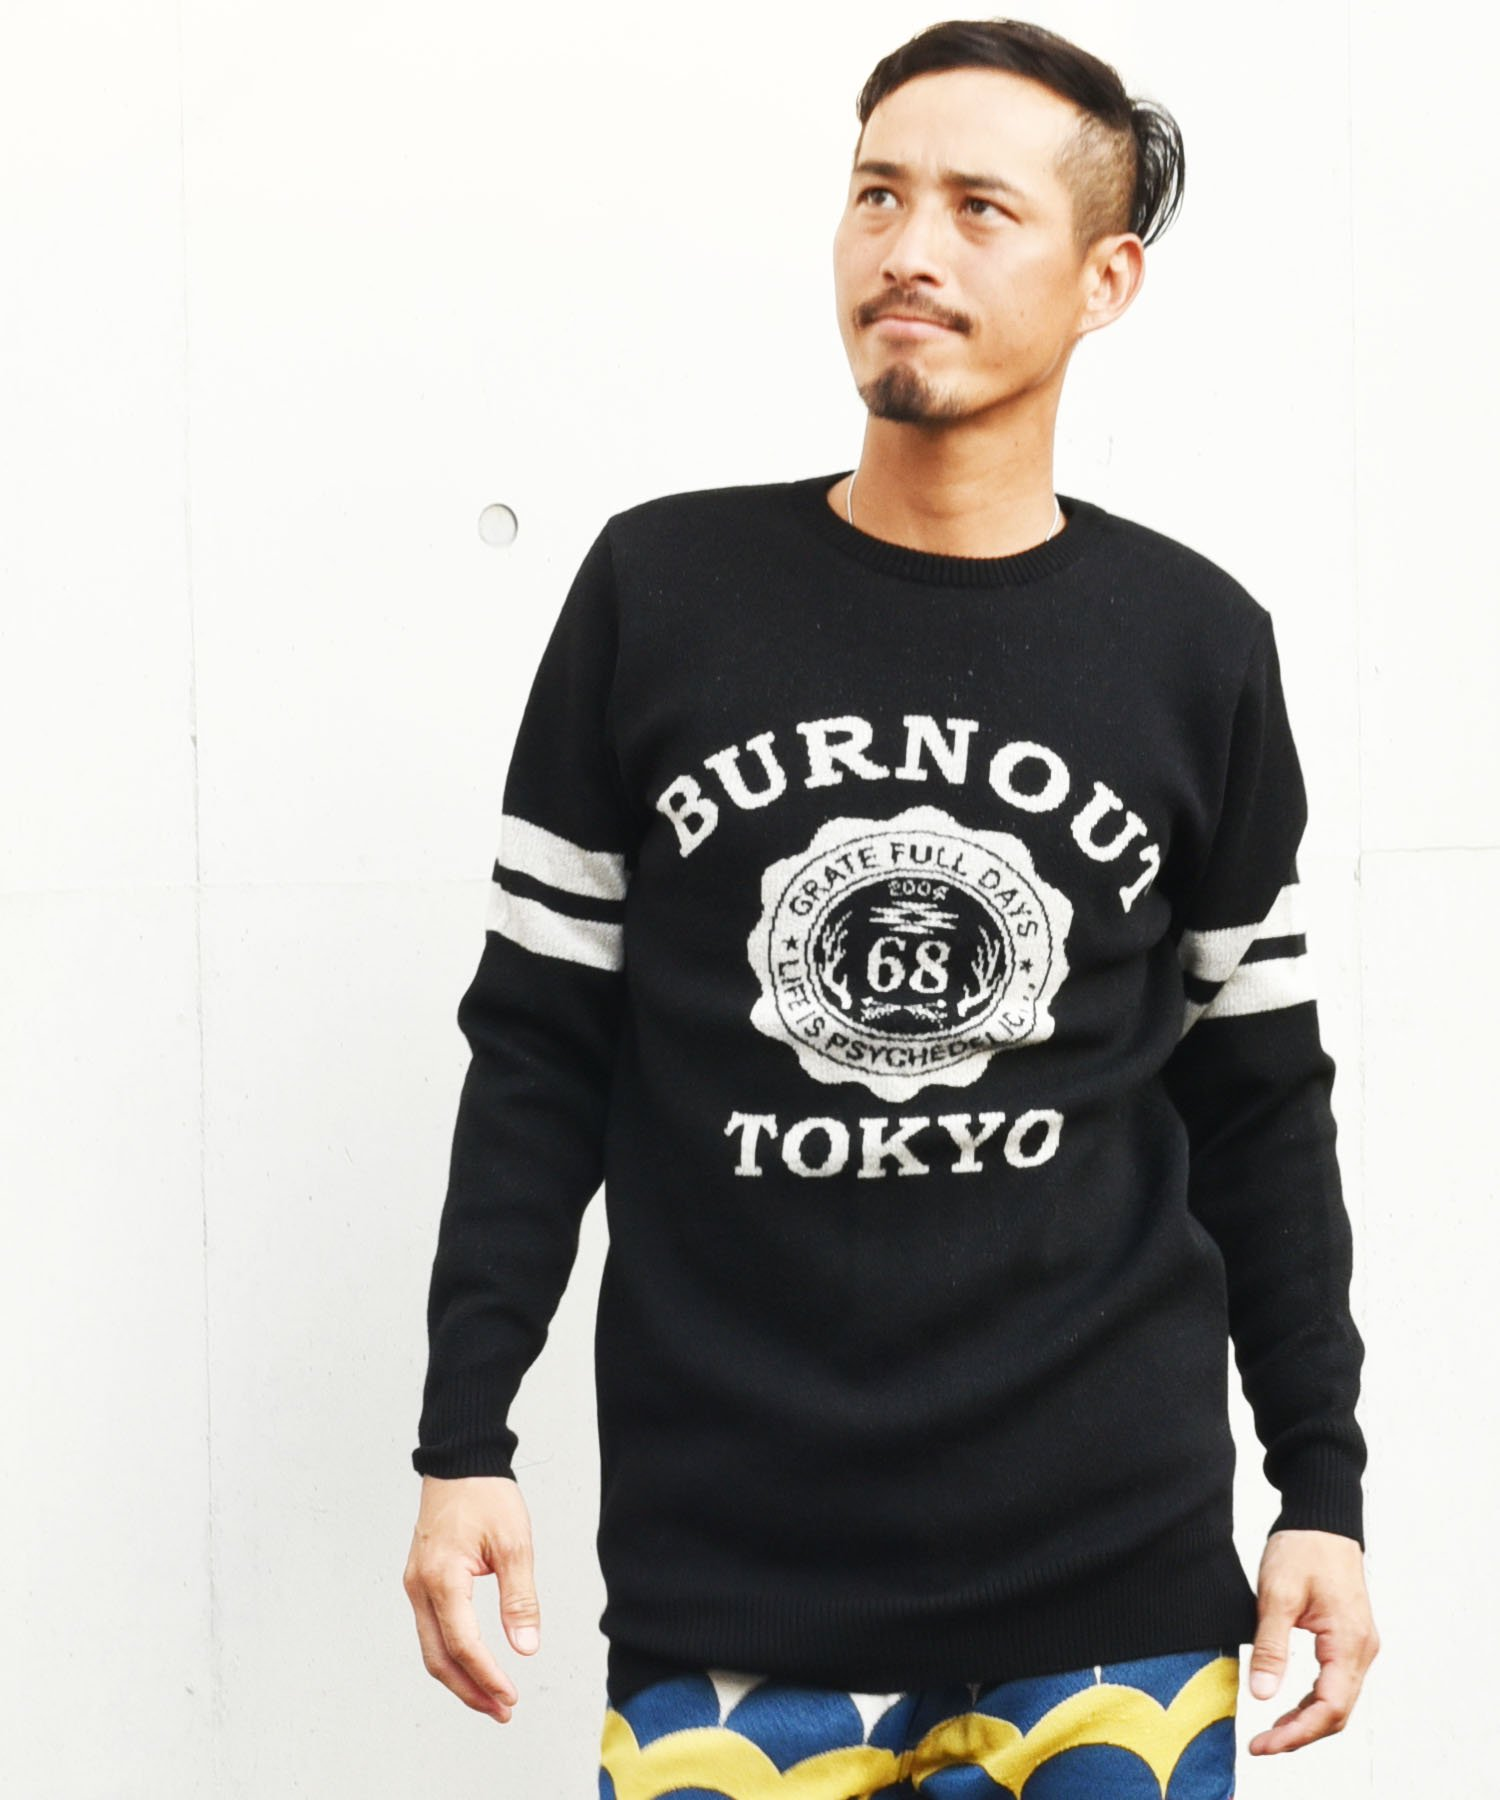 Burnout(バーンアウト)【BURNOUT COLLEGE】Jacquard Long Knit / ブラック<img class='new_mark_img2' src='https://img.shop-pro.jp/img/new/icons5.gif' style='border:none;display:inline;margin:0px;padding:0px;width:auto;' />